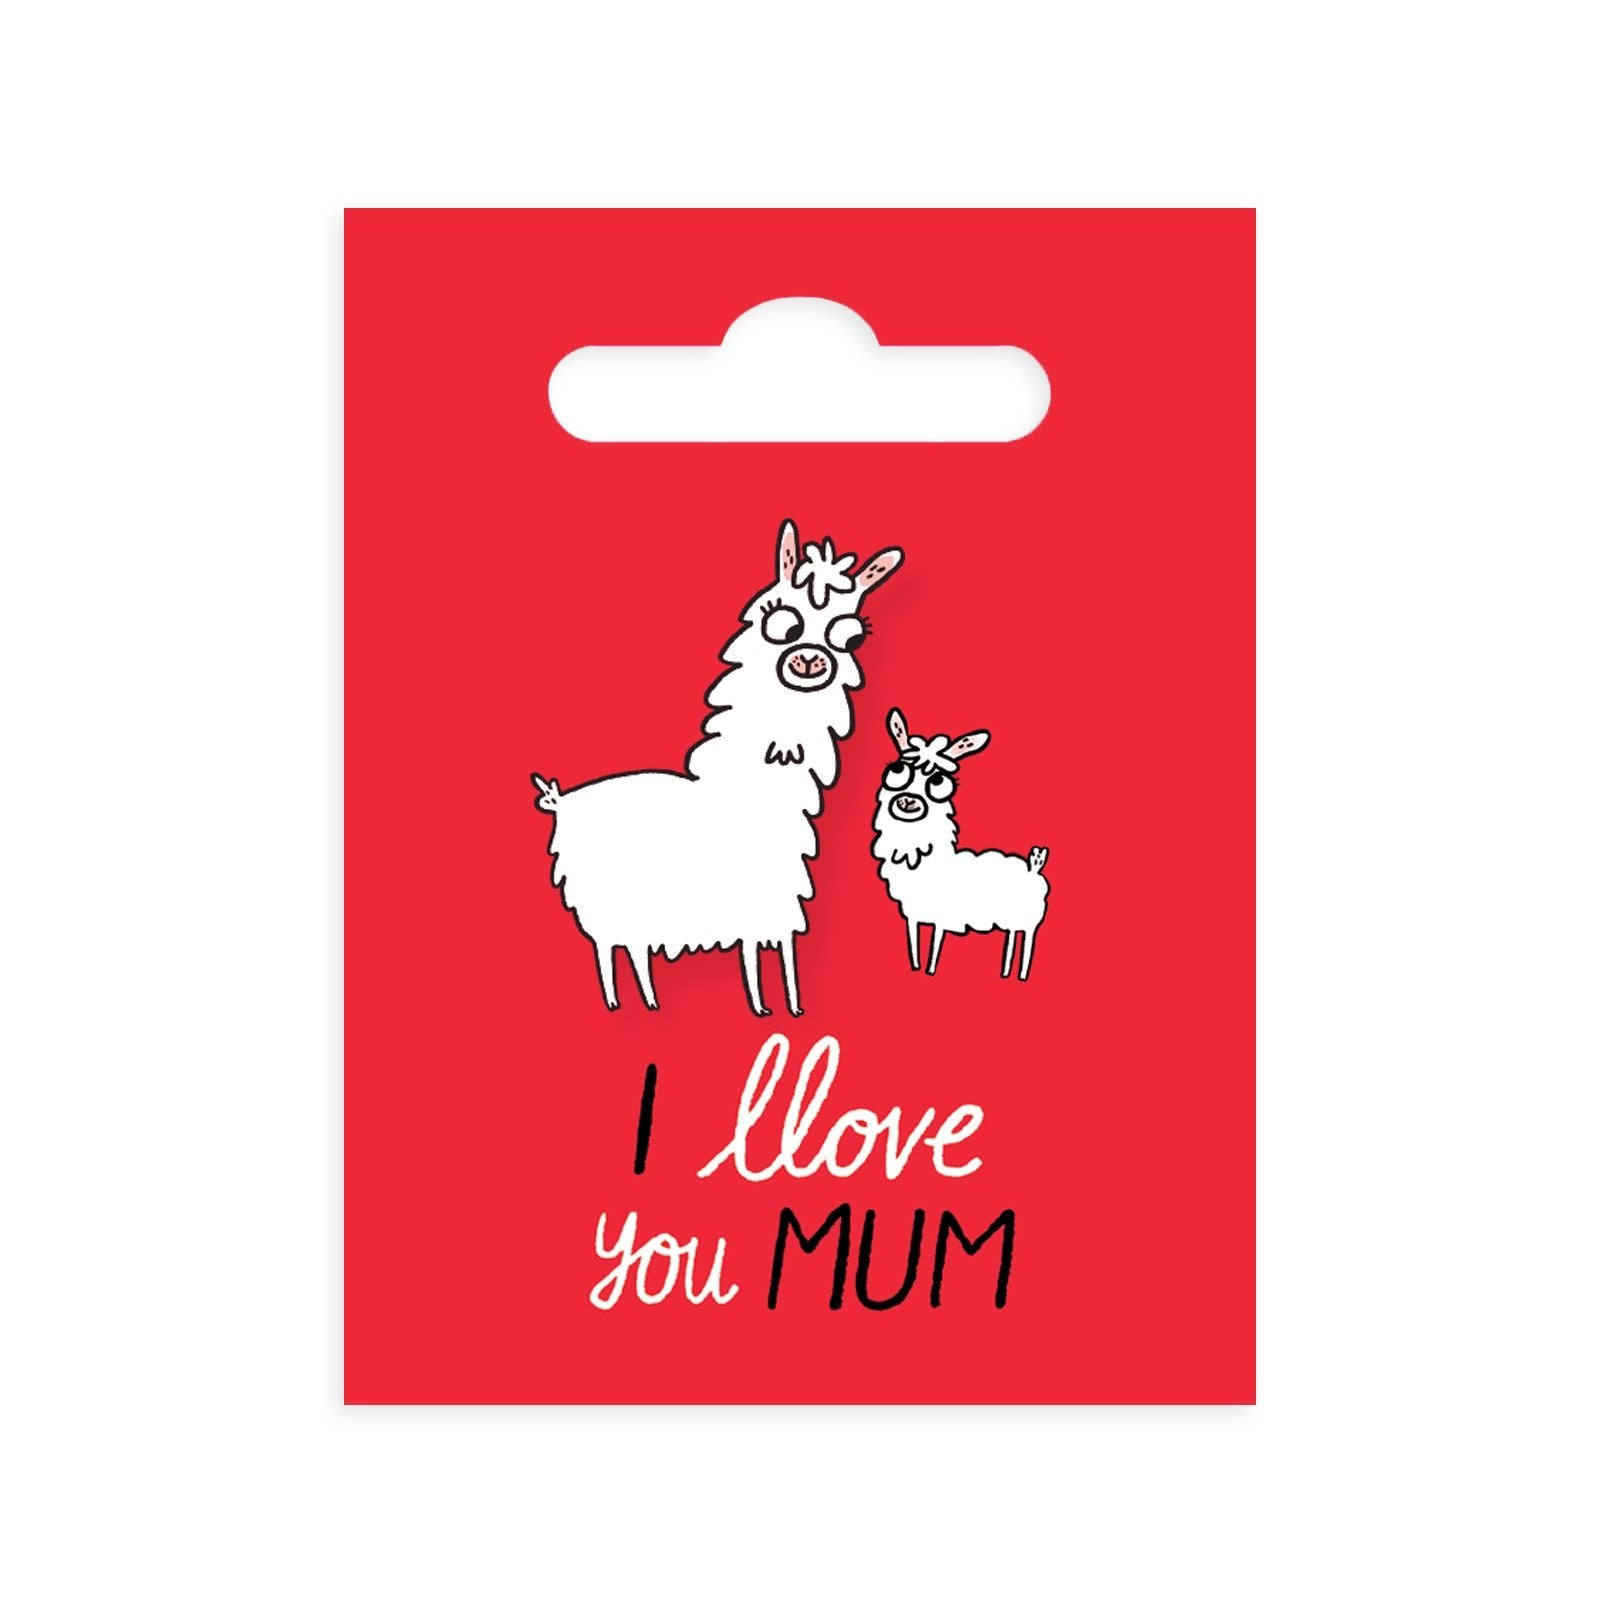 Llove You Mum Enamel Pin